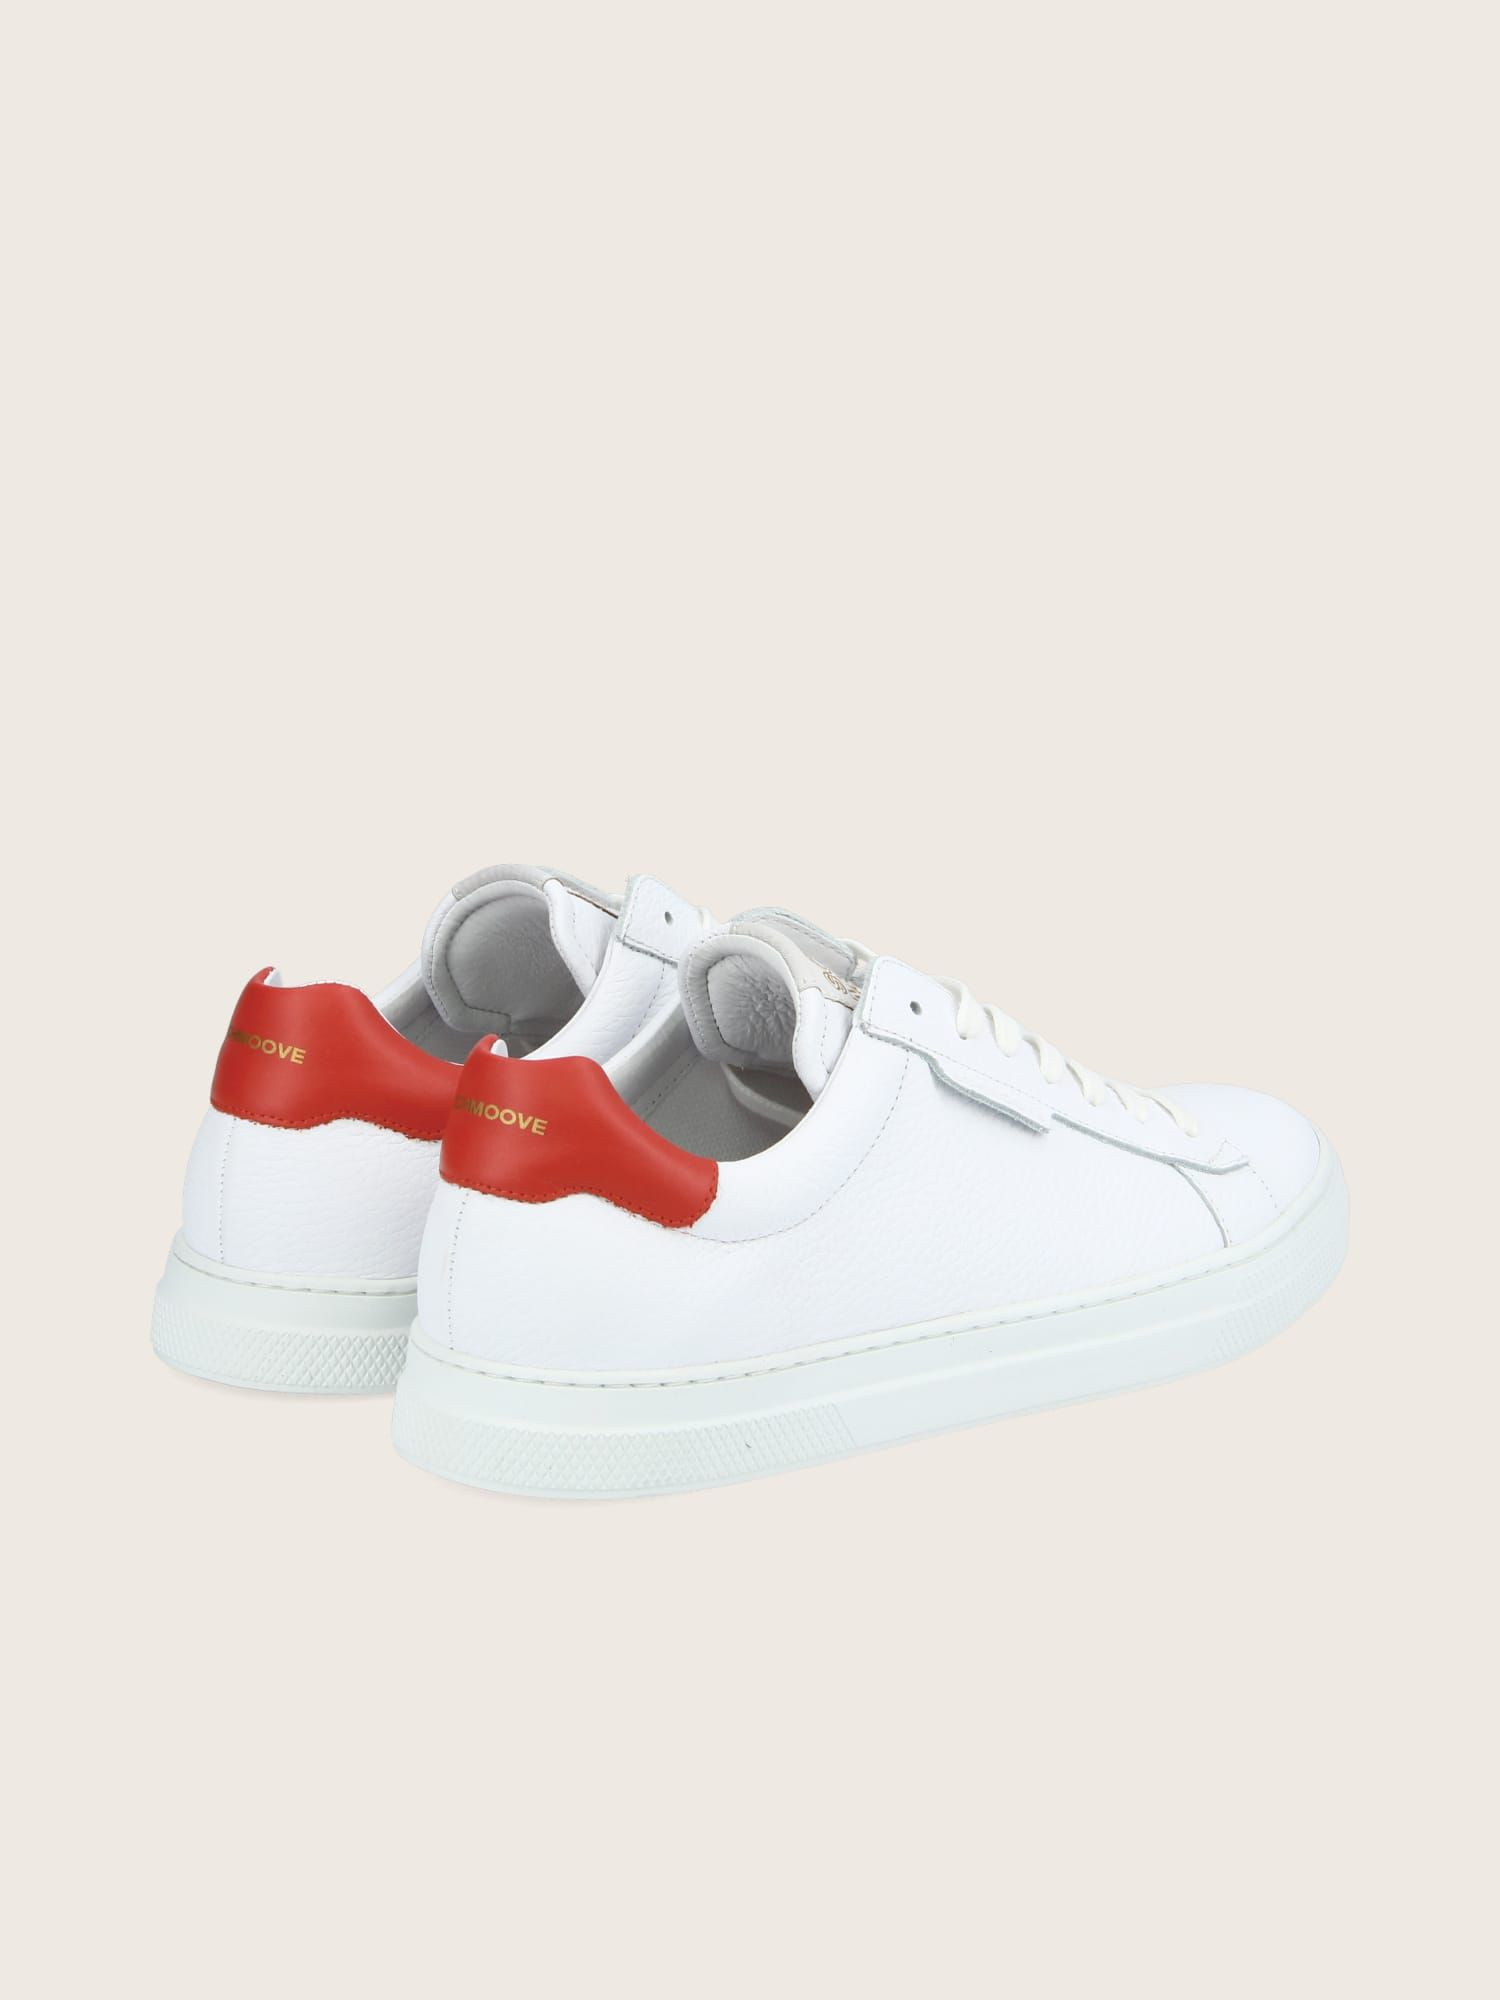 schmoove.fr SPARK CLAY - GR.NAPPA/NAPPA - WHITE/RED **WM